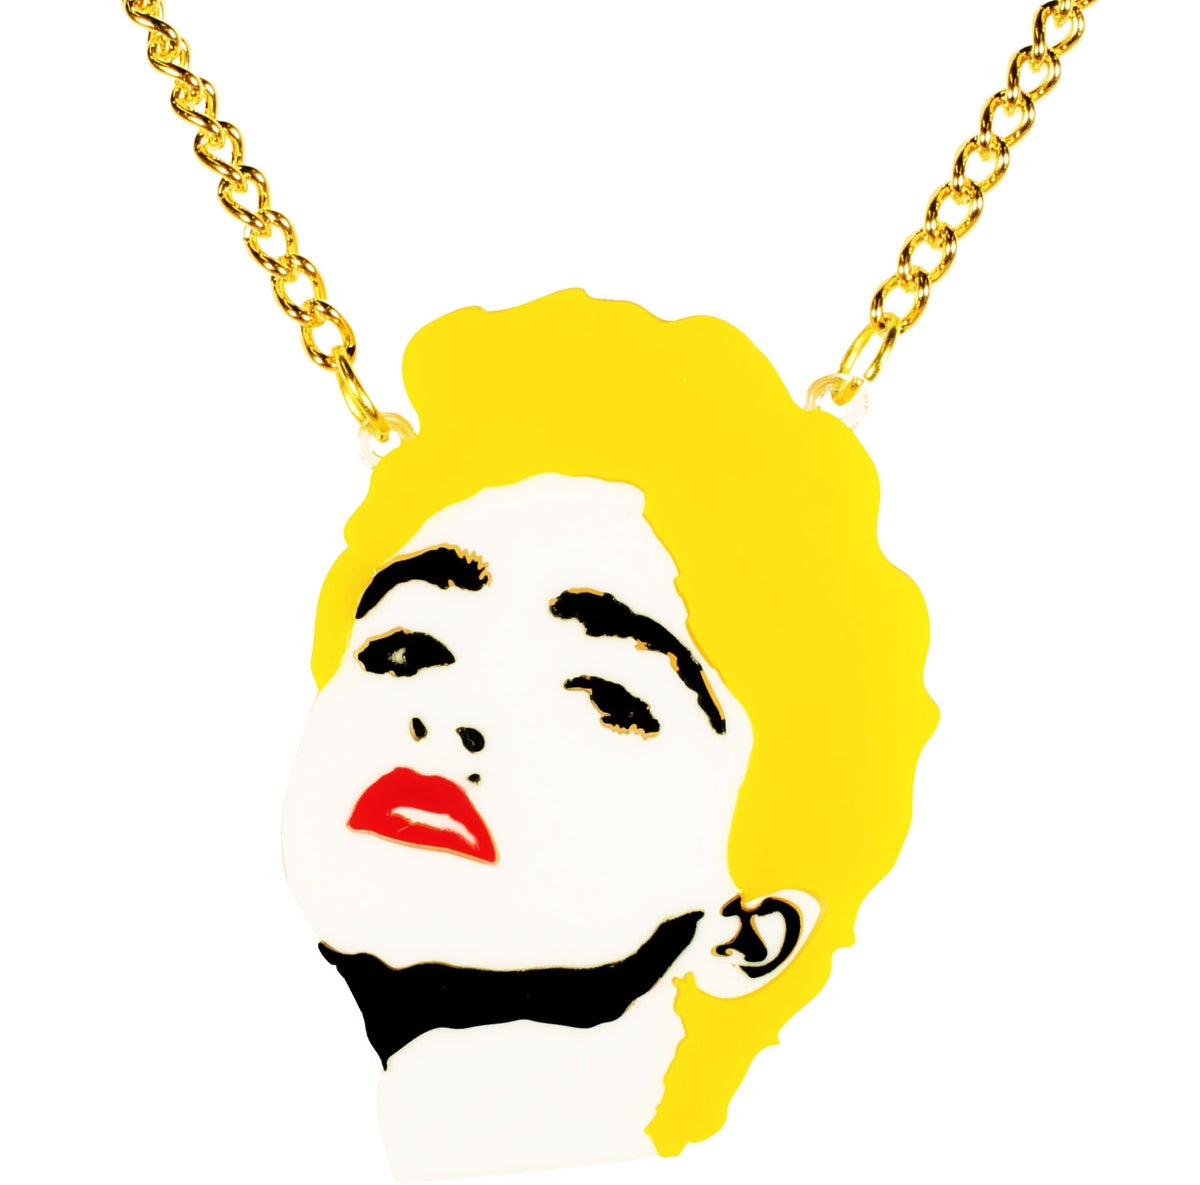 Image of Madonna Necklace